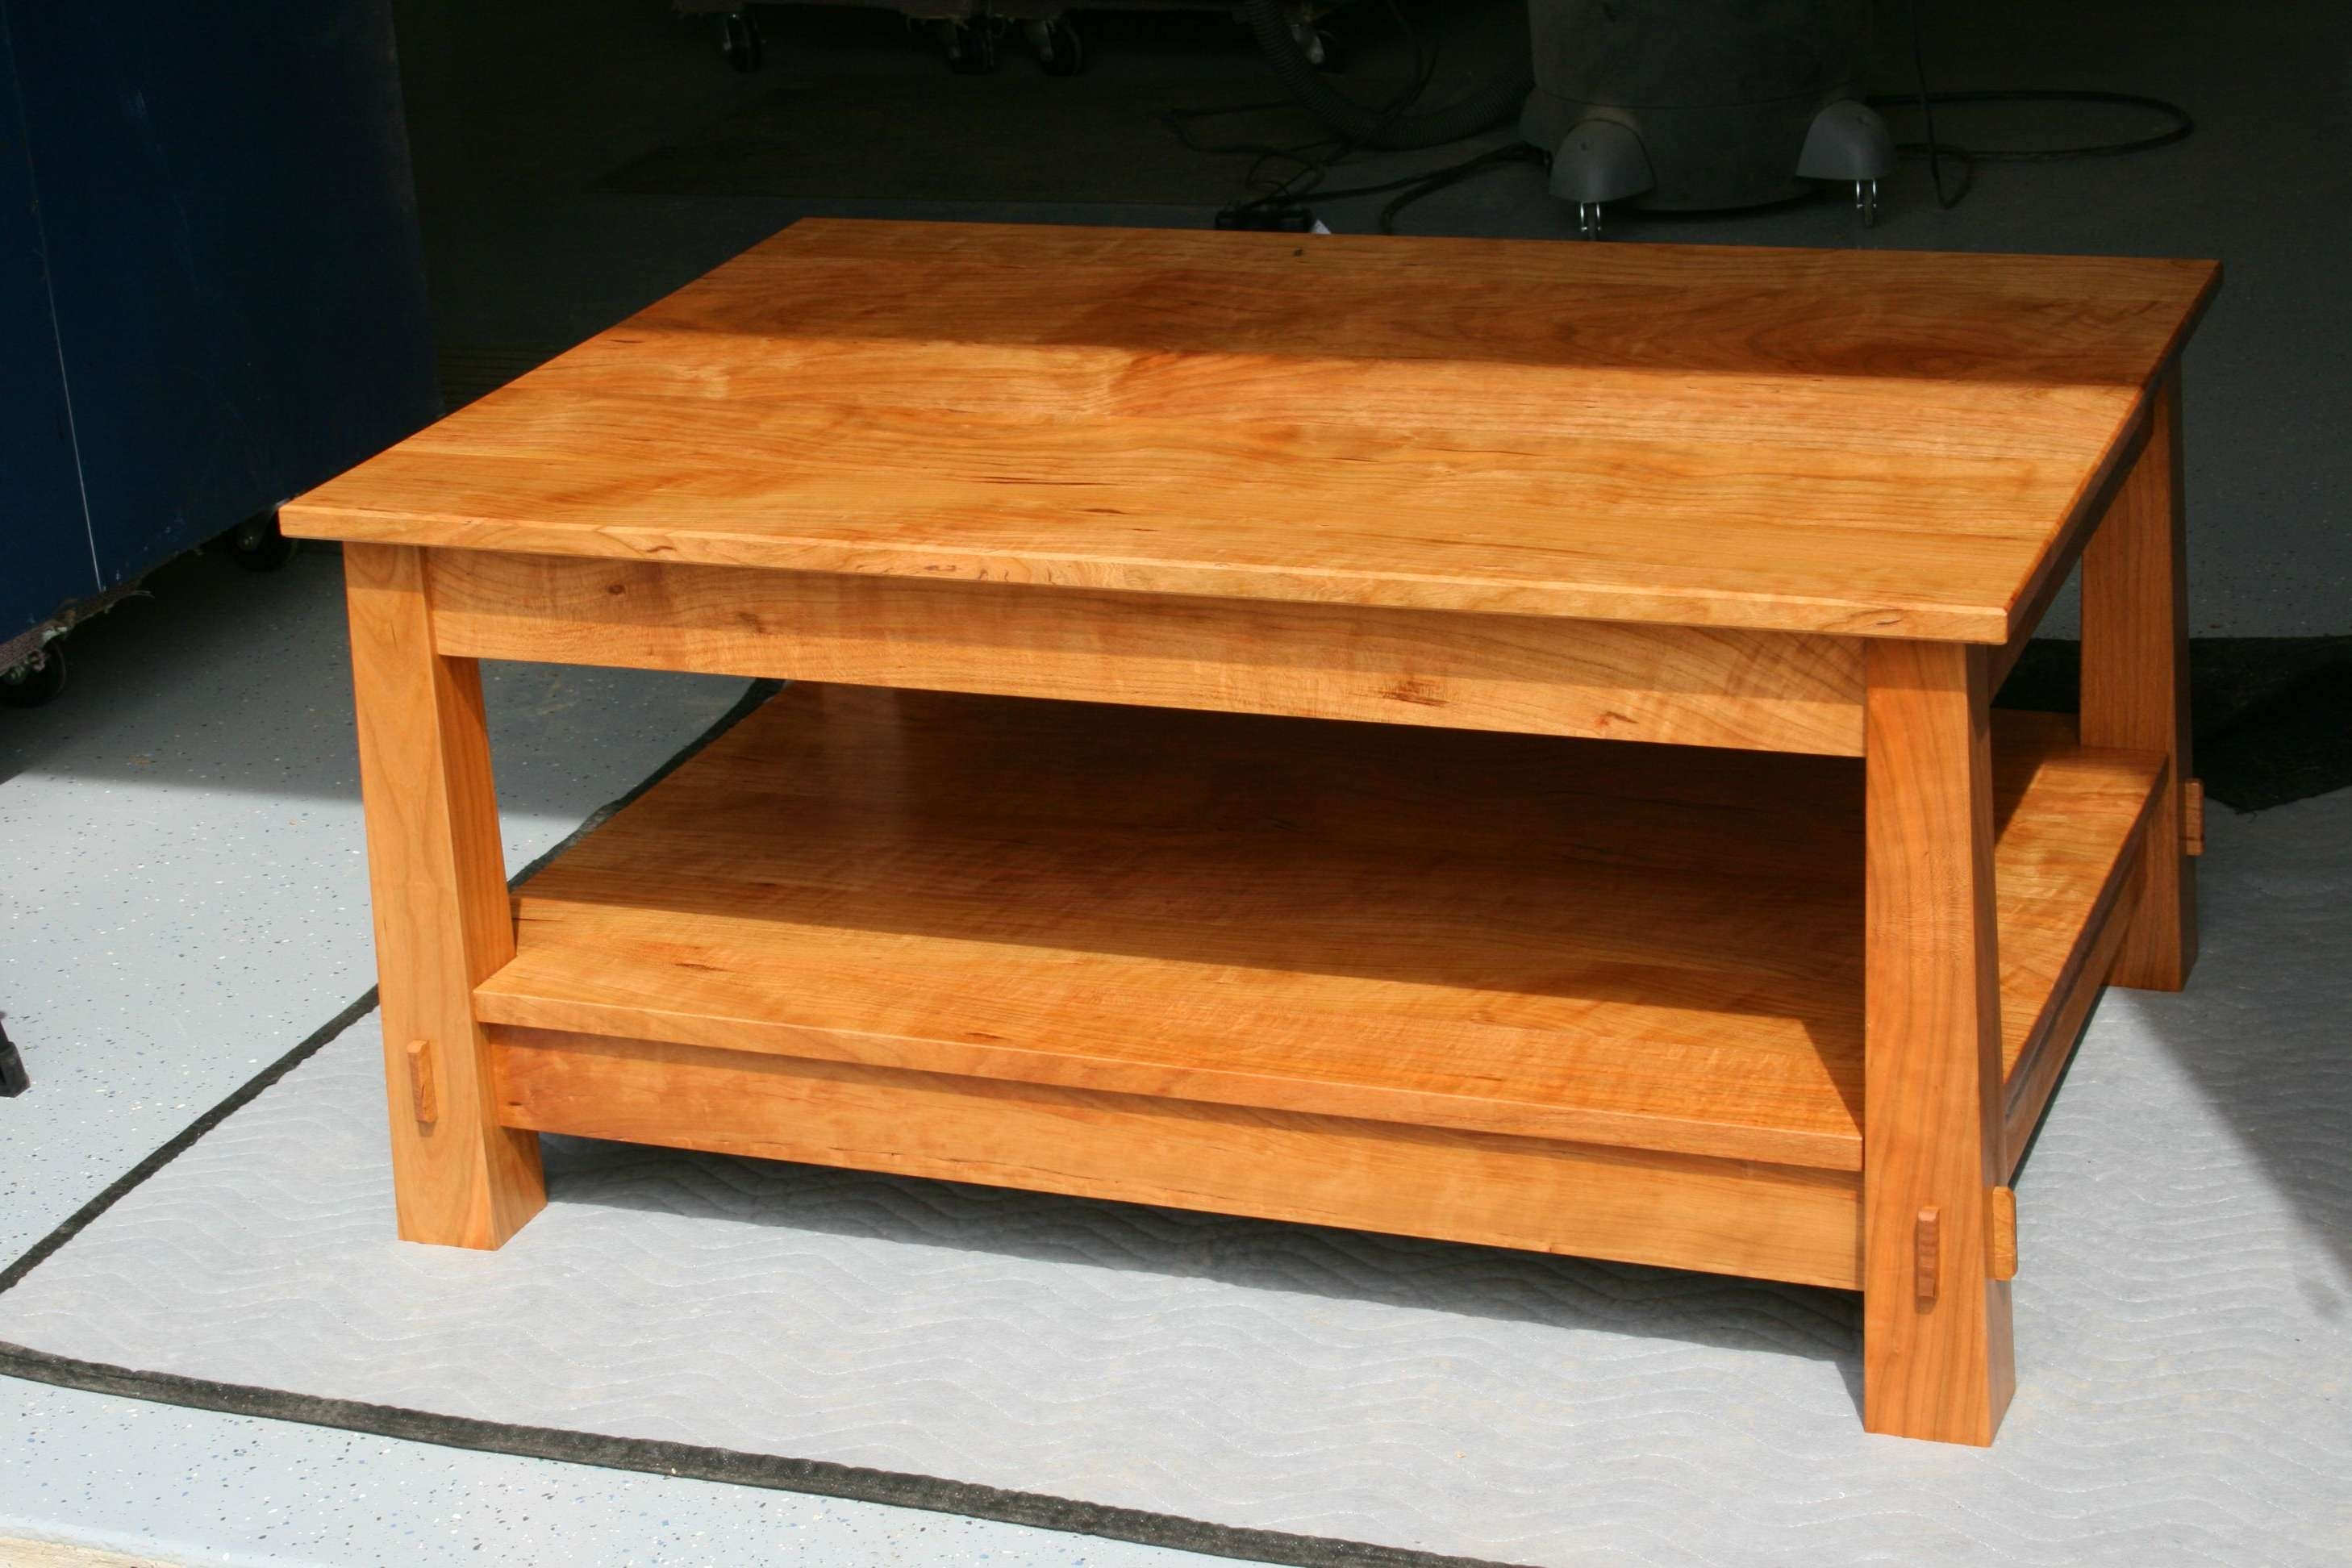 Latest Handmade Wooden Coffee Tables For Coffee Table : Fabulous Small Coffee Tables Oak Coffee Table Solid (View 15 of 20)